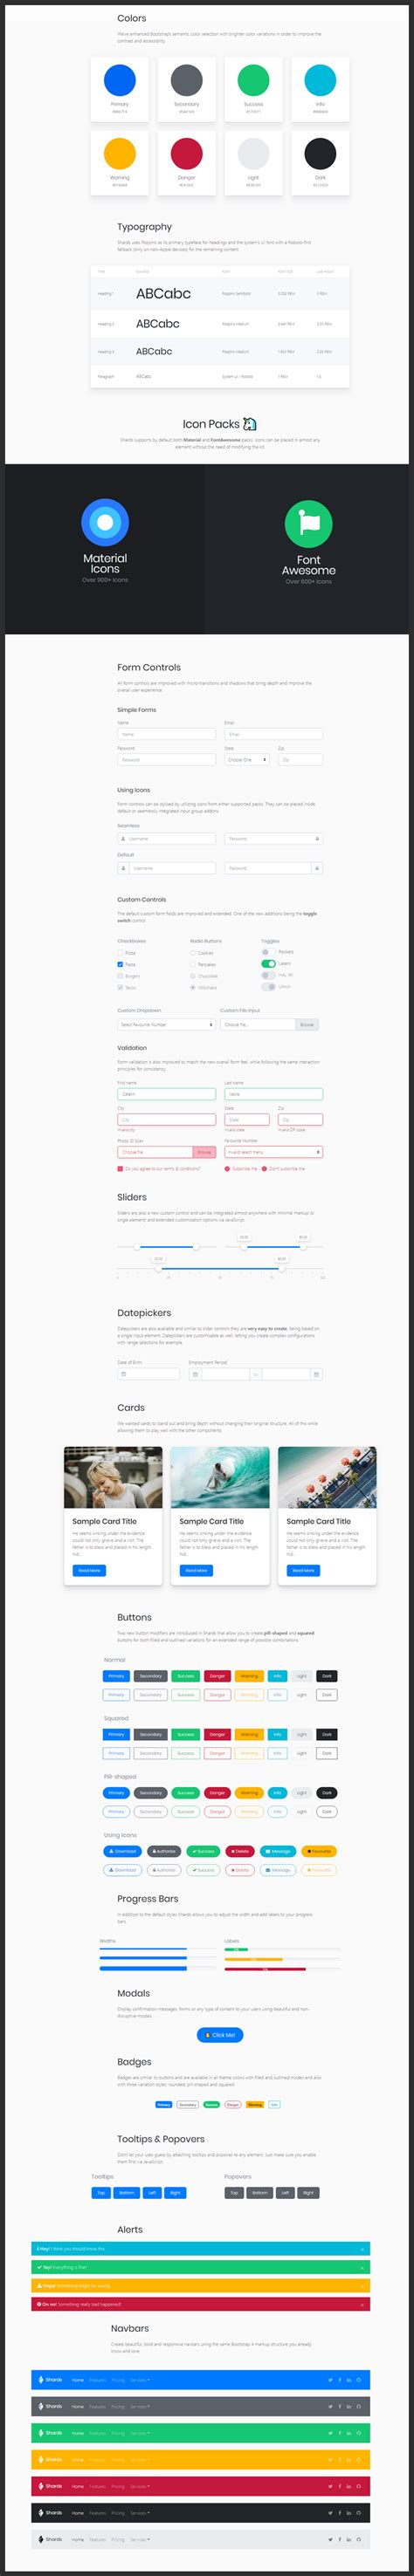 Bootstrap 4 Ui Design System Bypeople | bootstrap 4 ui design system bypeople